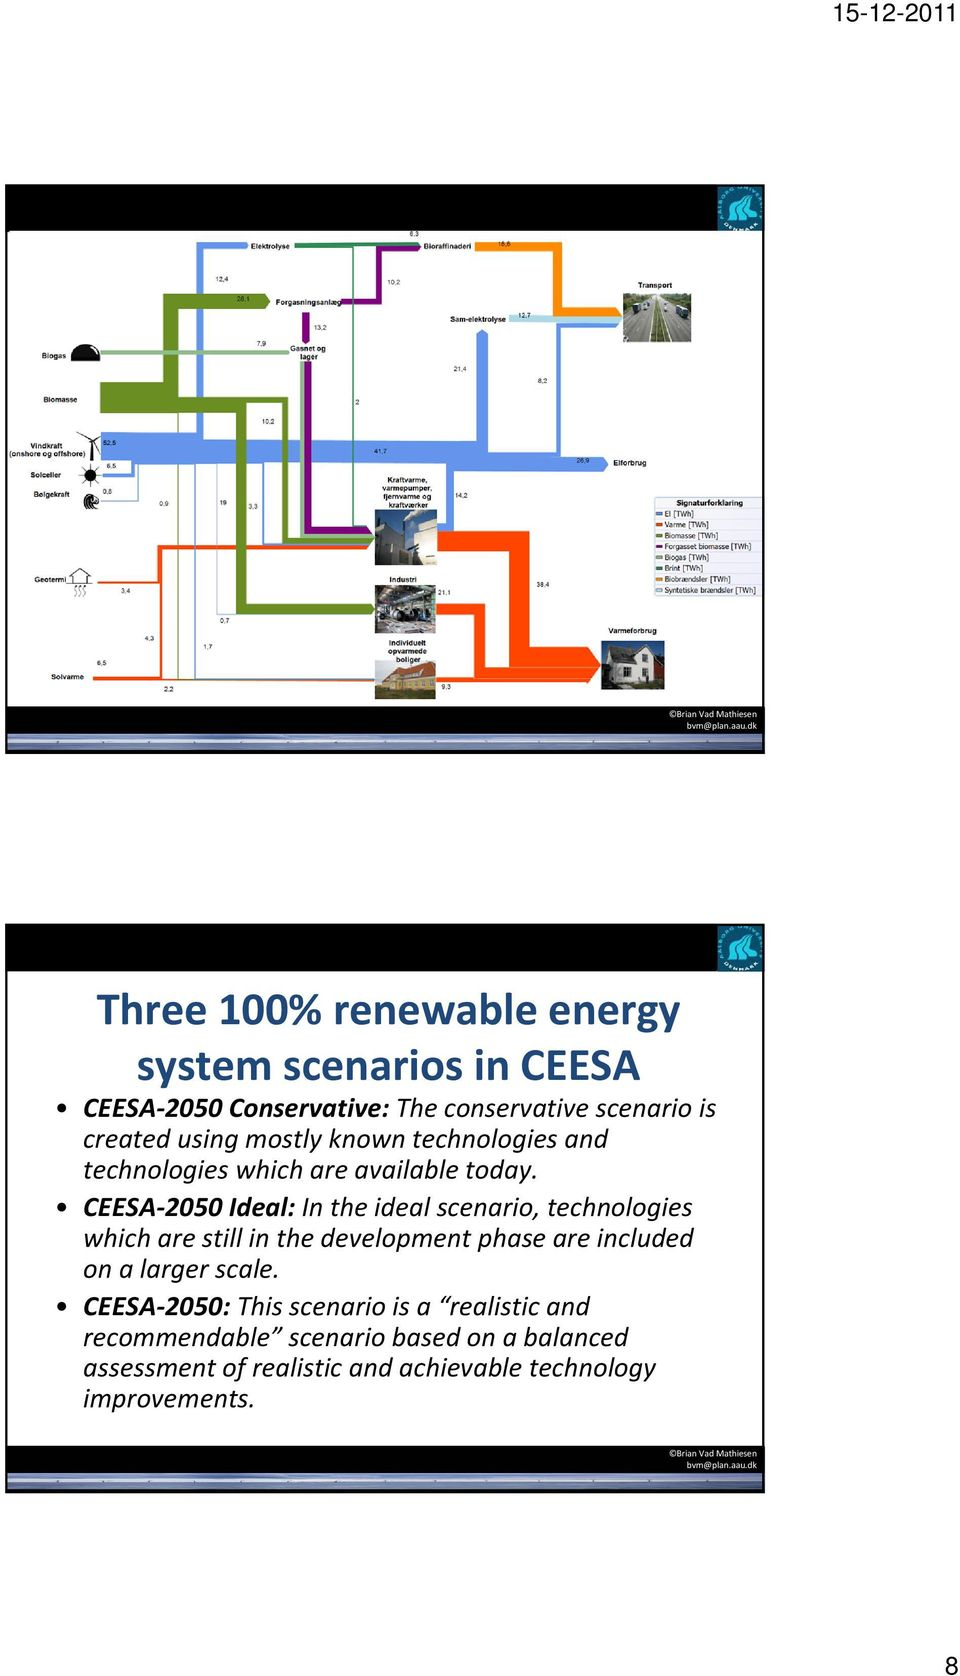 CEESA 25 Ideal: In the ideal scenario, technologies which are still in the development phase are included on a larger